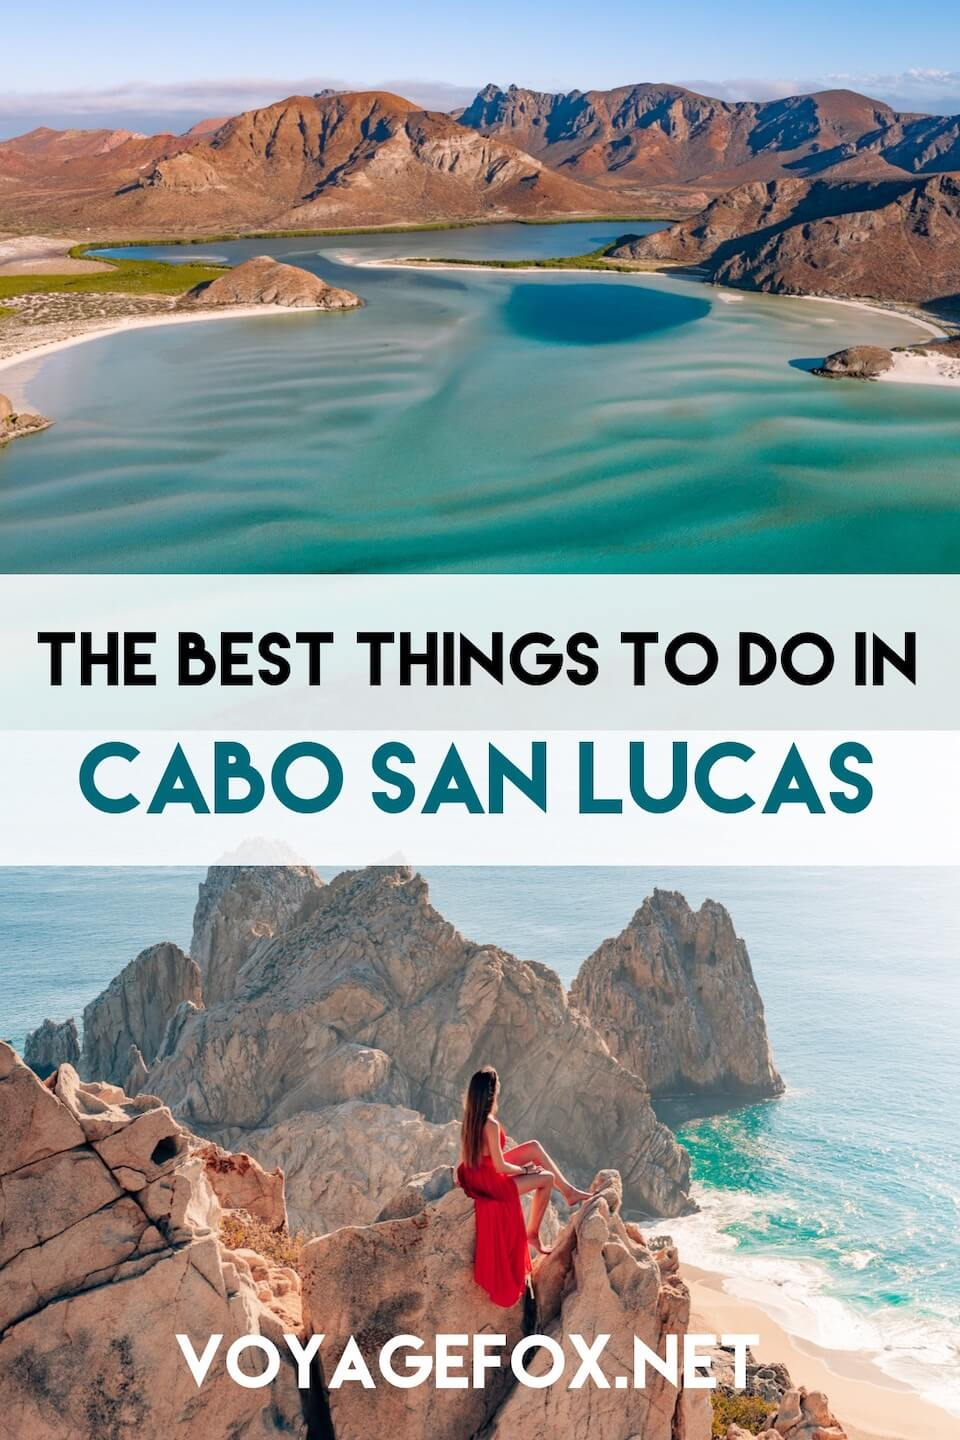 the best things to do in Cabo san lucas